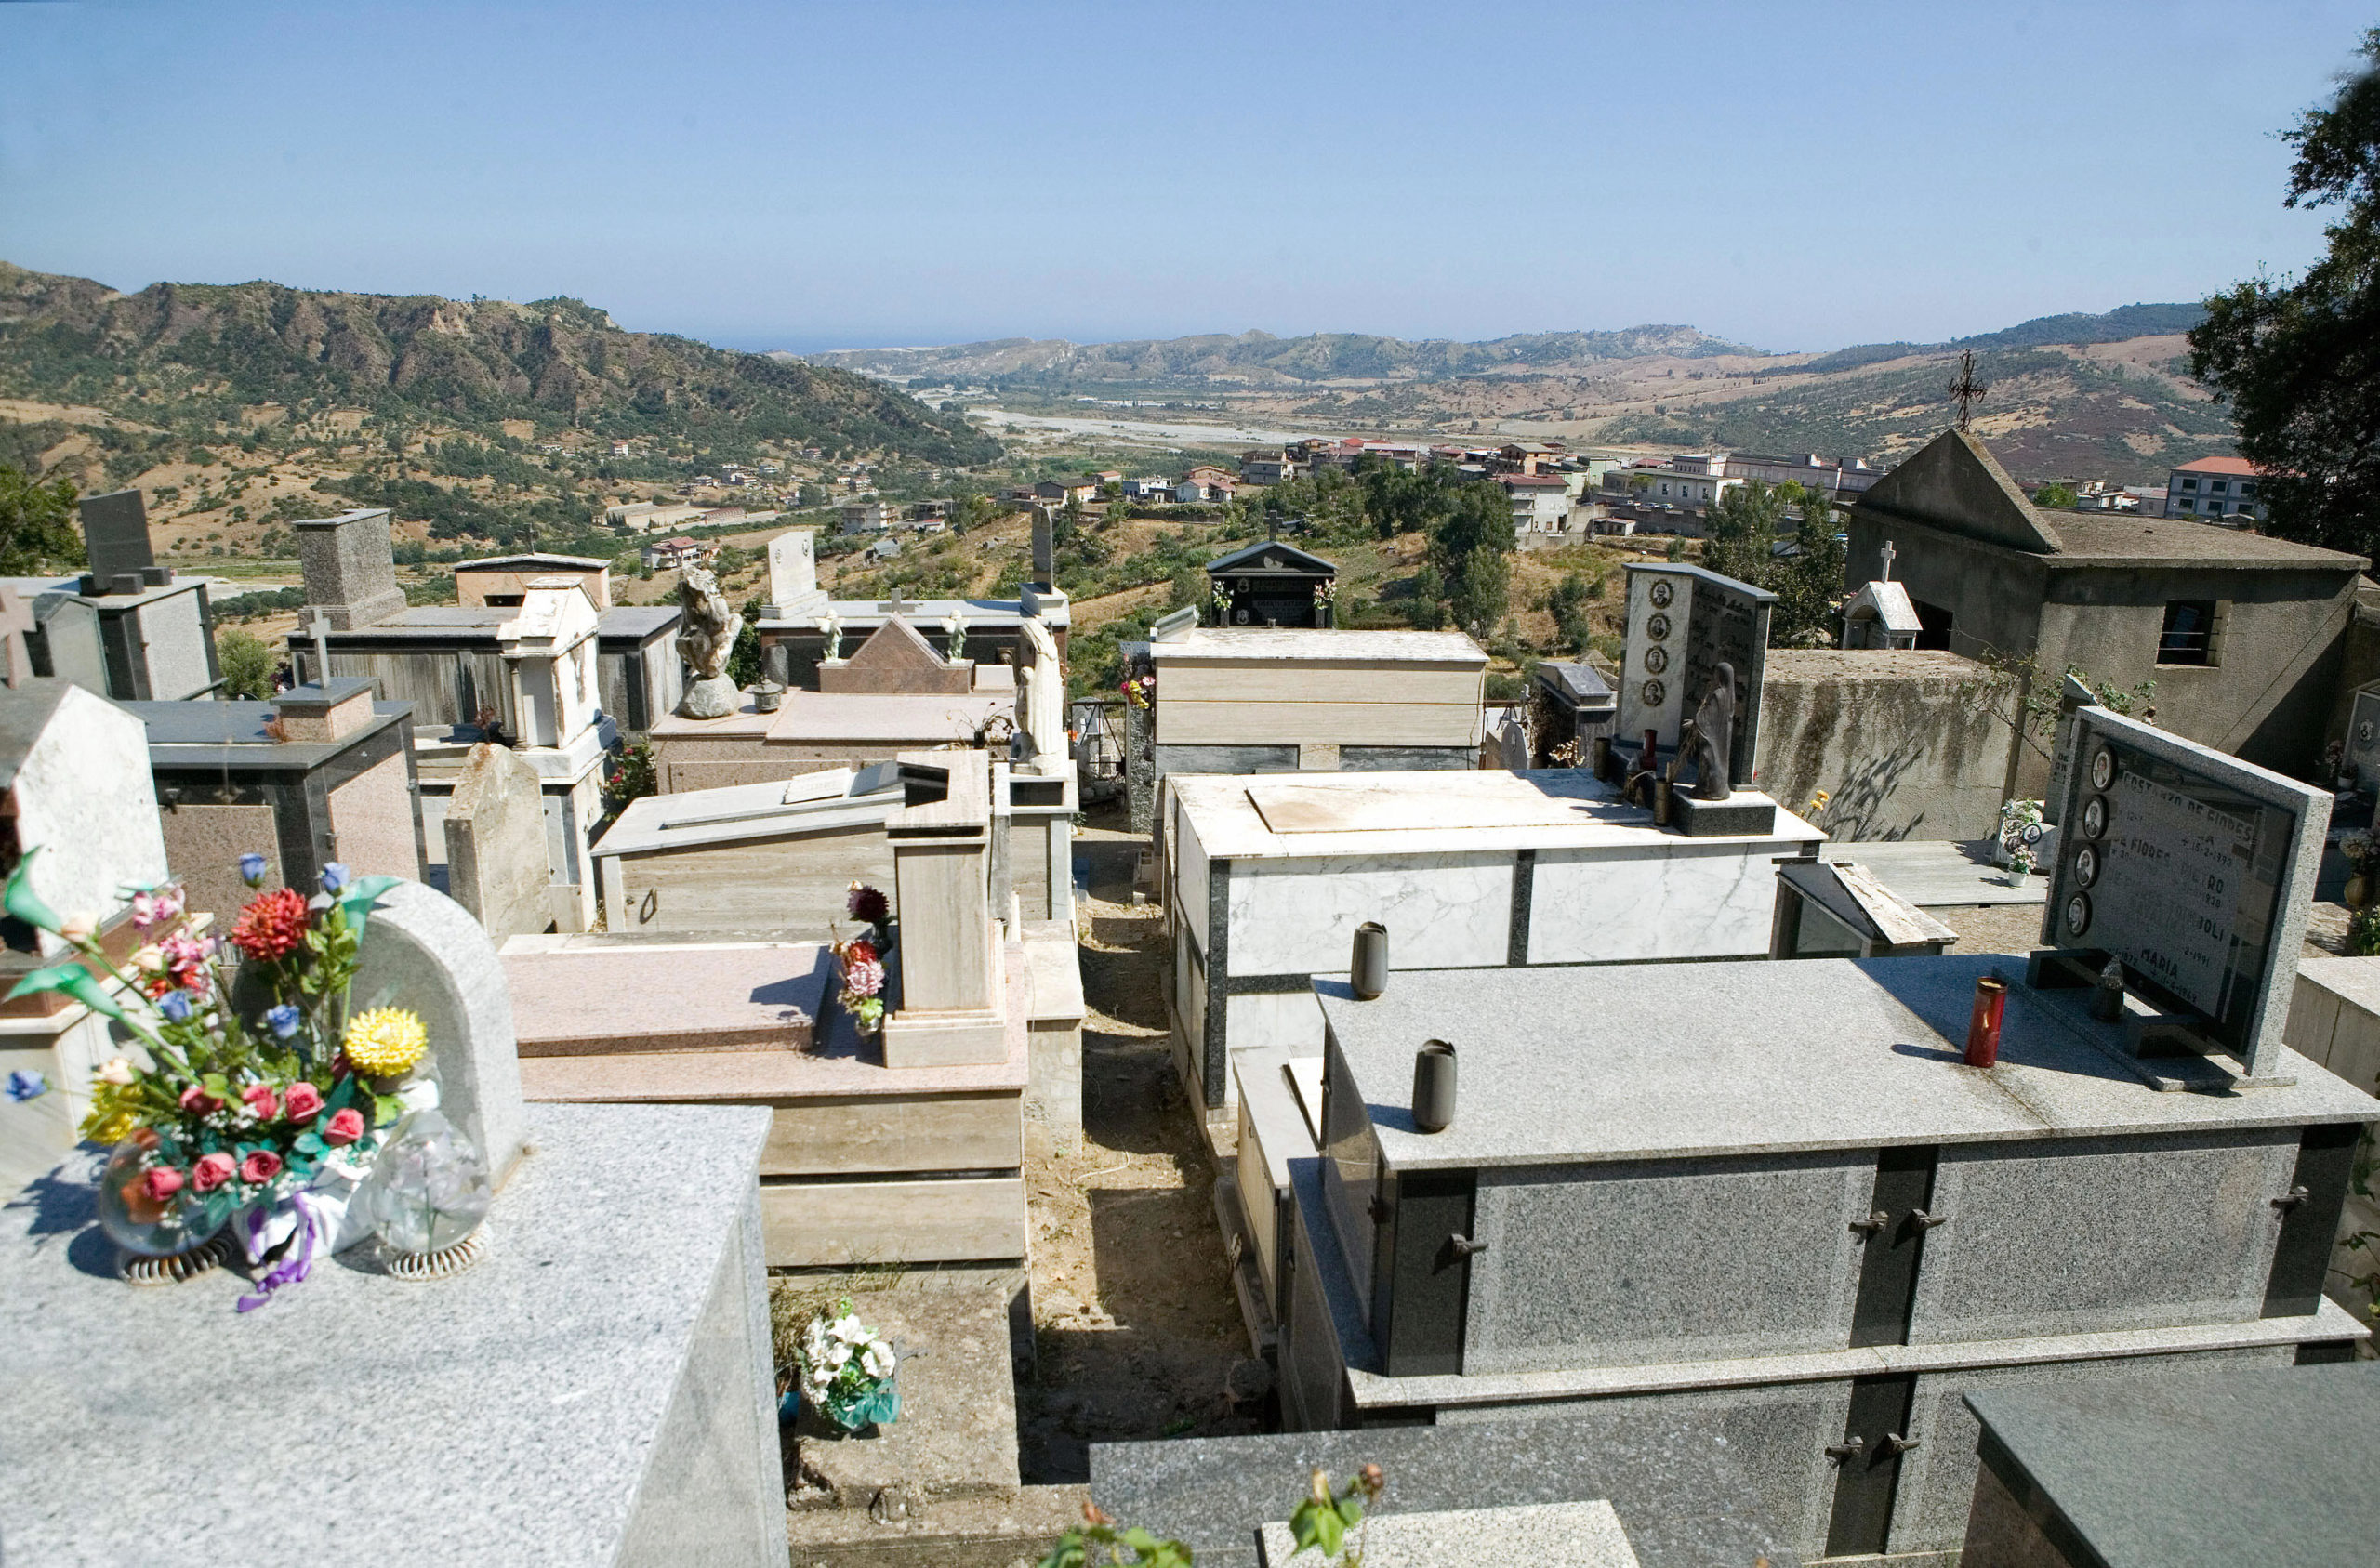 This photo dated 16 August 2007 shows the cemetery of San Luca village in the southern region of Calabria. (ANTONIO TACCONE/AFP via Getty Images)